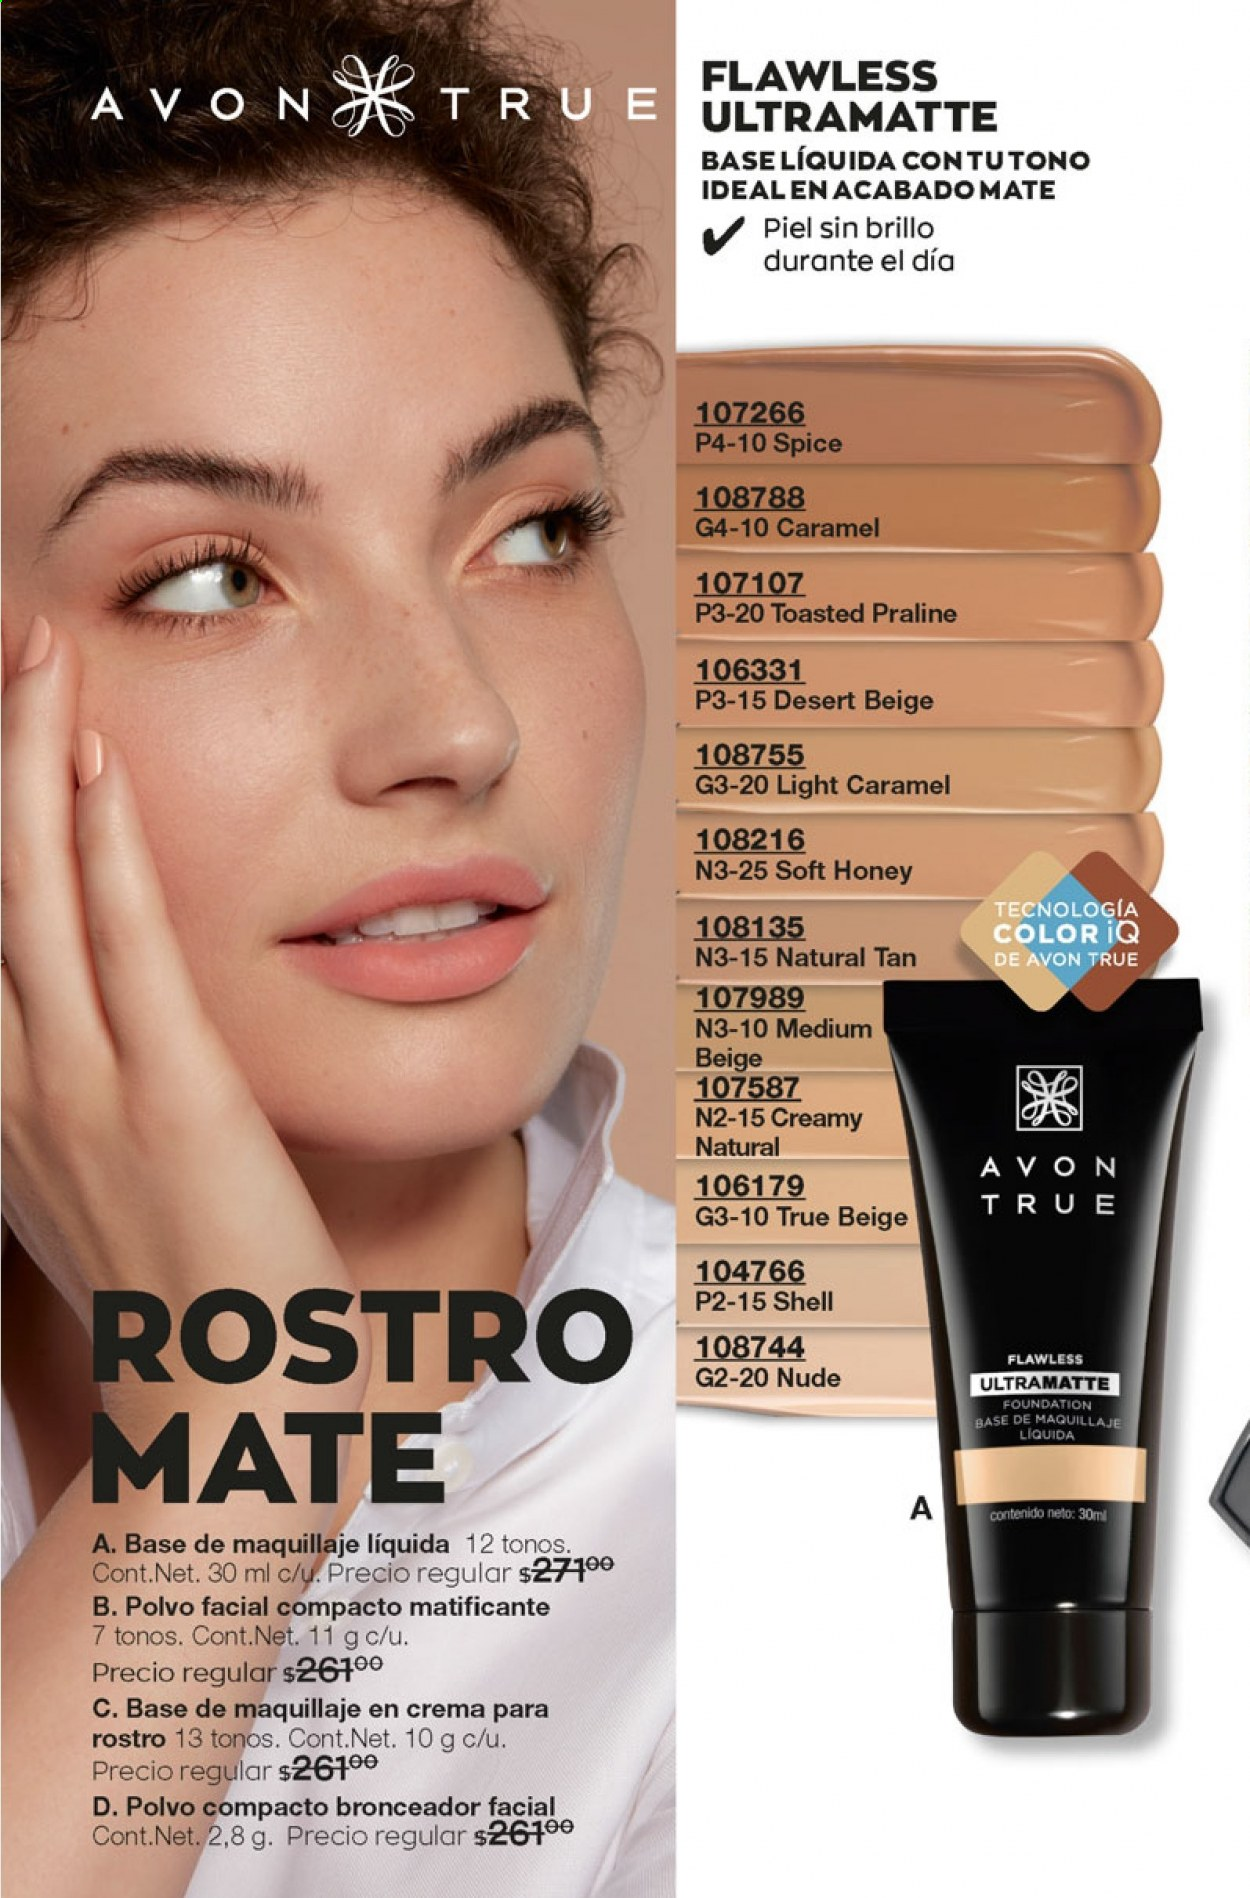 Folleto actual Avon - 5.10.2020 - 5.11.2020 - Ventas - avon true, maquillaje, praliné, flawless, polvo compacto, foundation, base de maquillaje. Página 138.